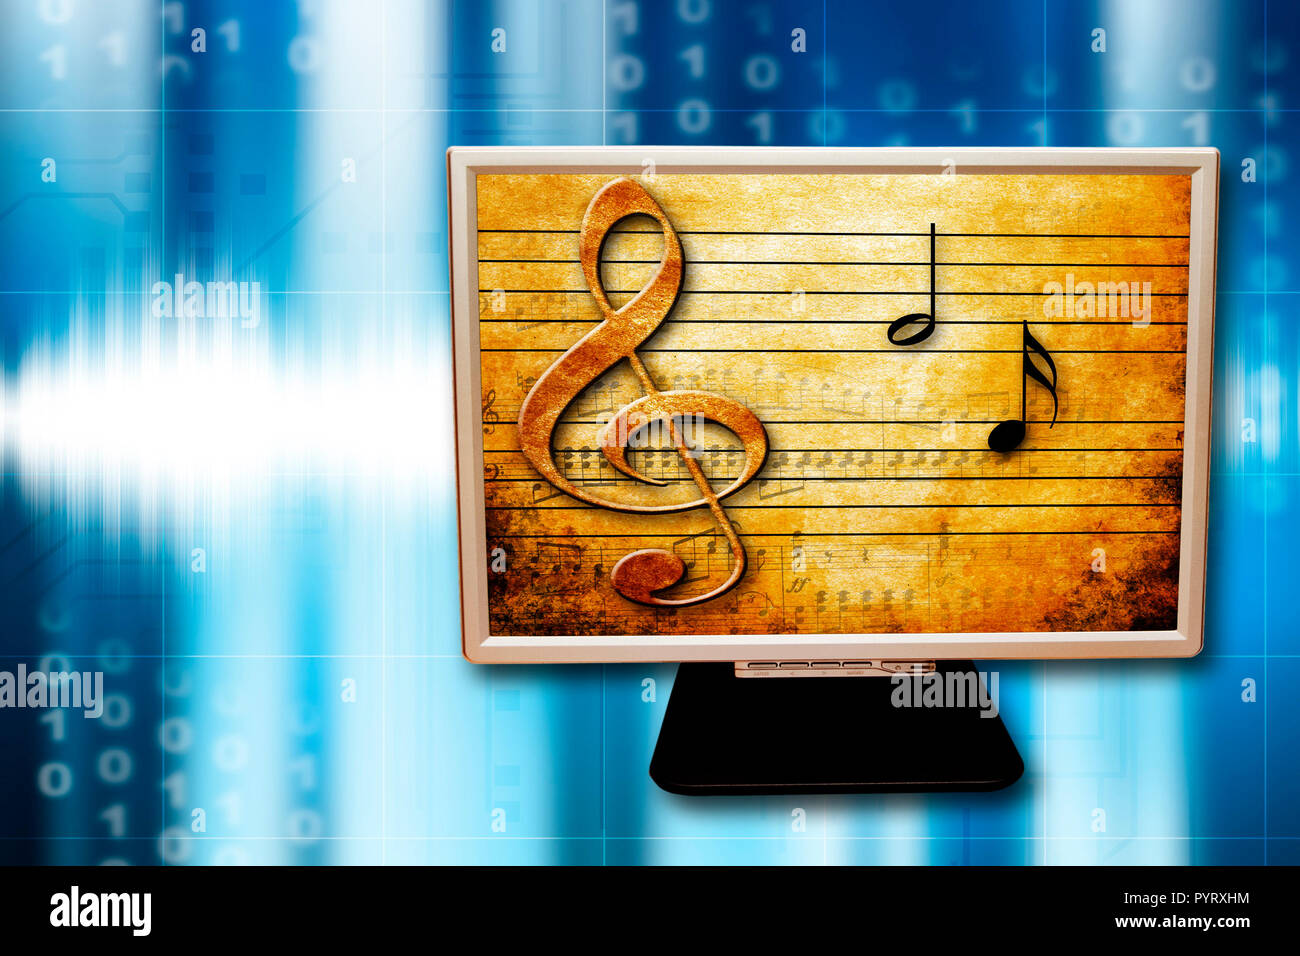 conceptual illustration for music on the Internet - Stock Image